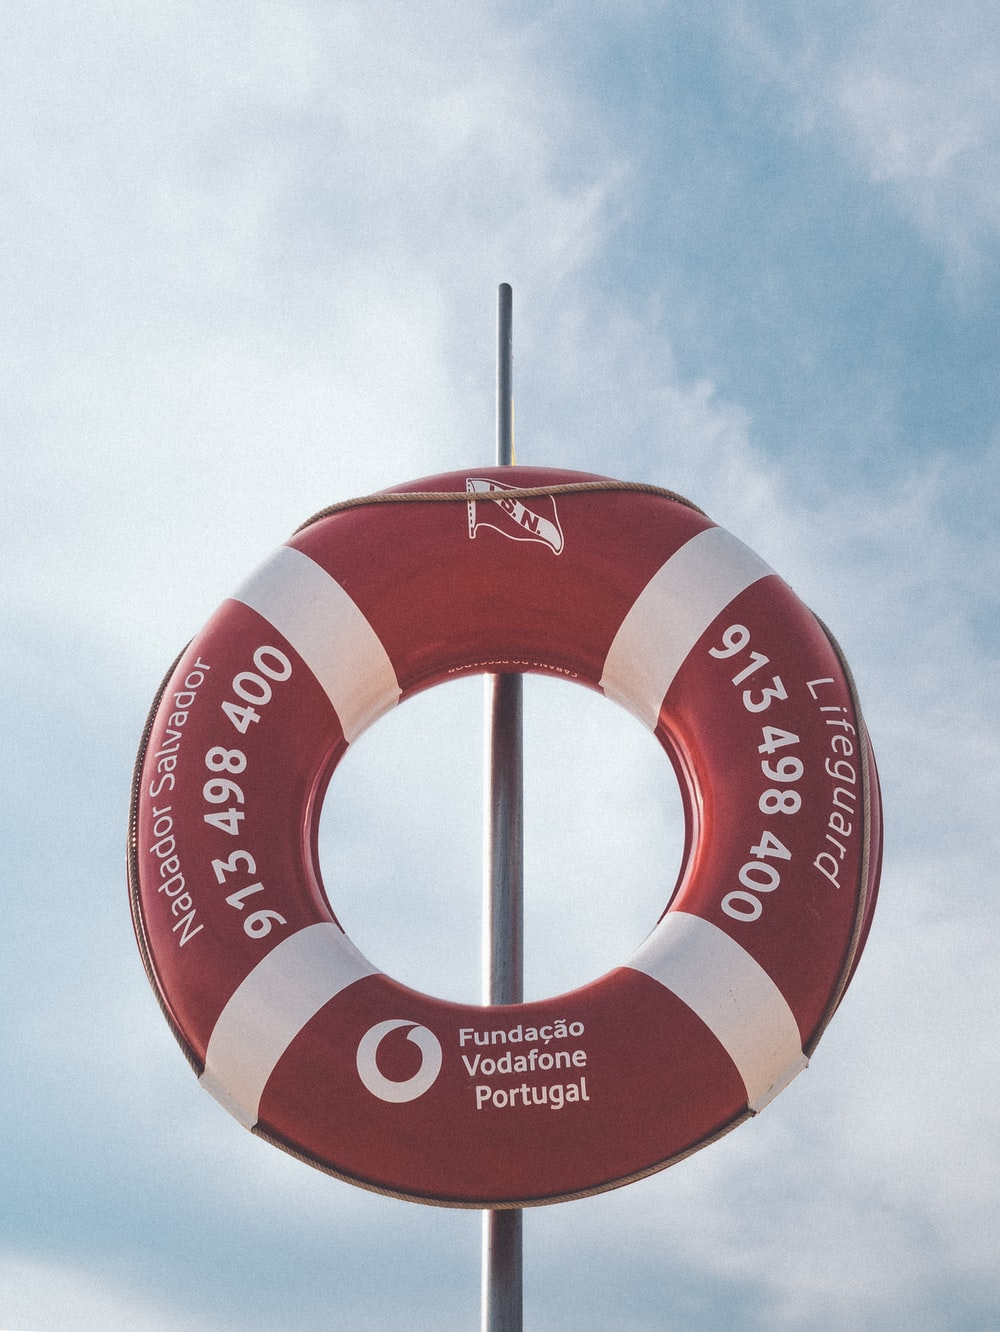 photo of red and white Vodafone inflatable floater